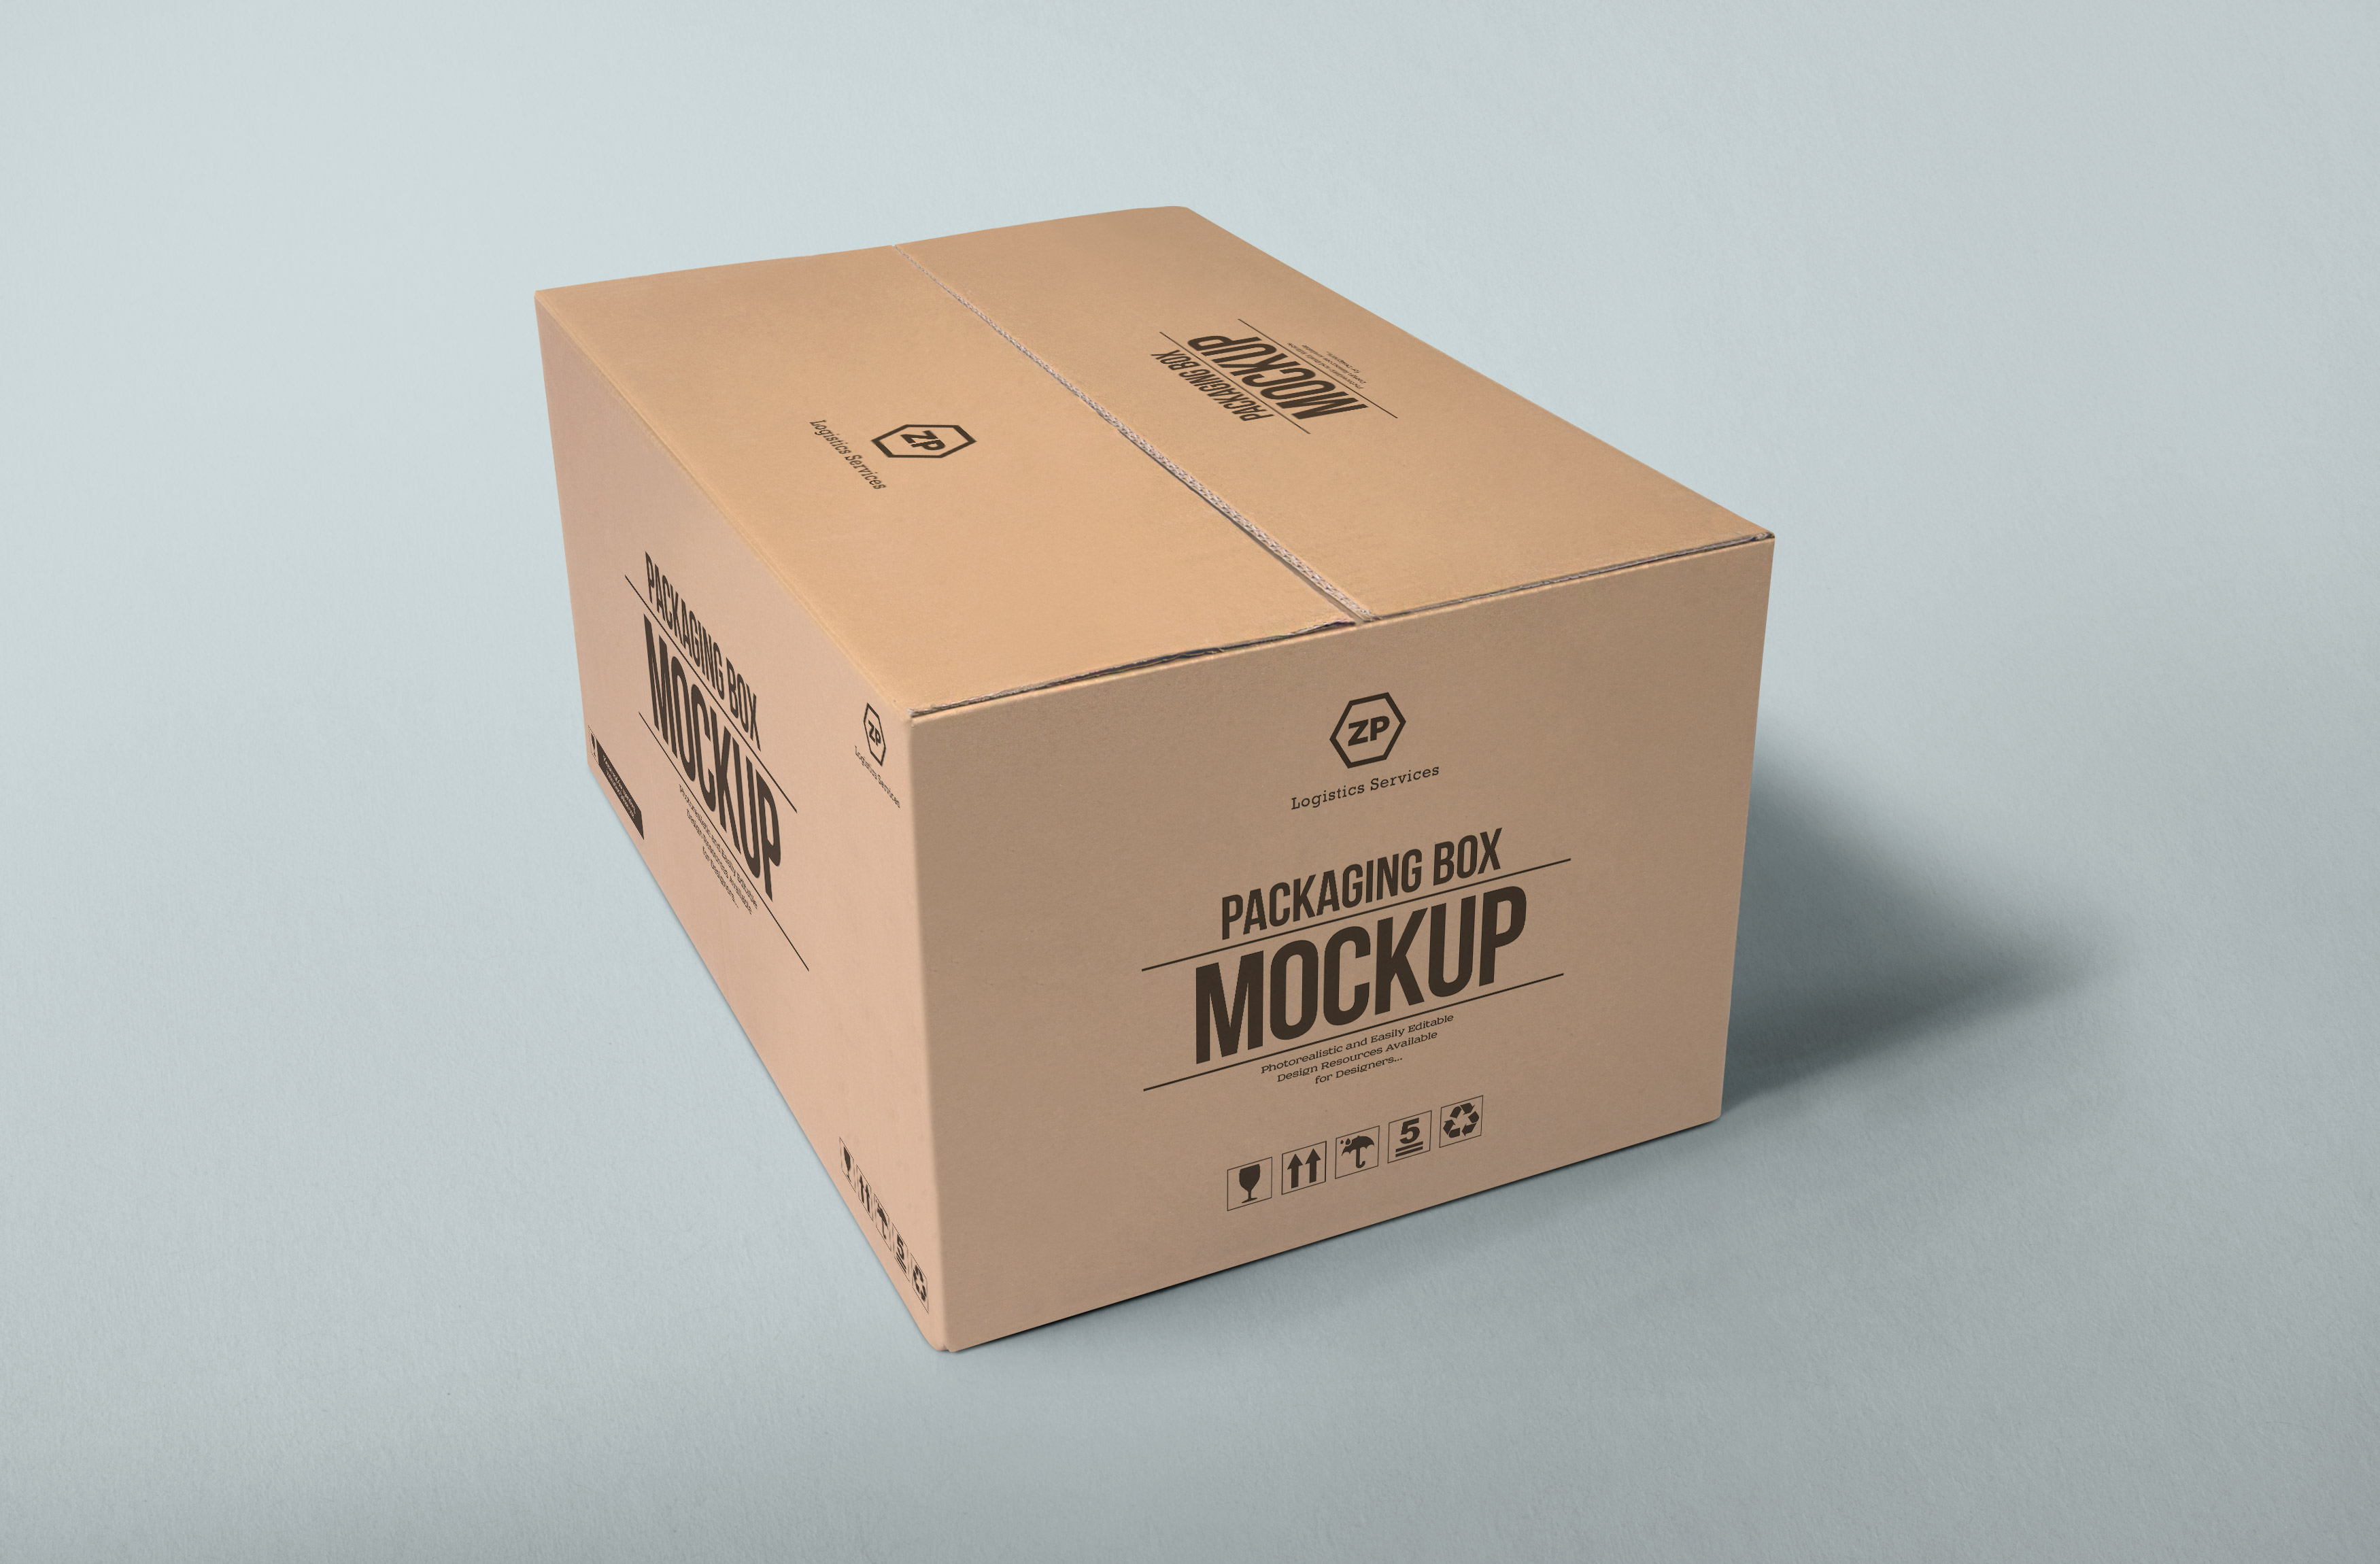 packaging-box-mockup-bonus-4.jpg